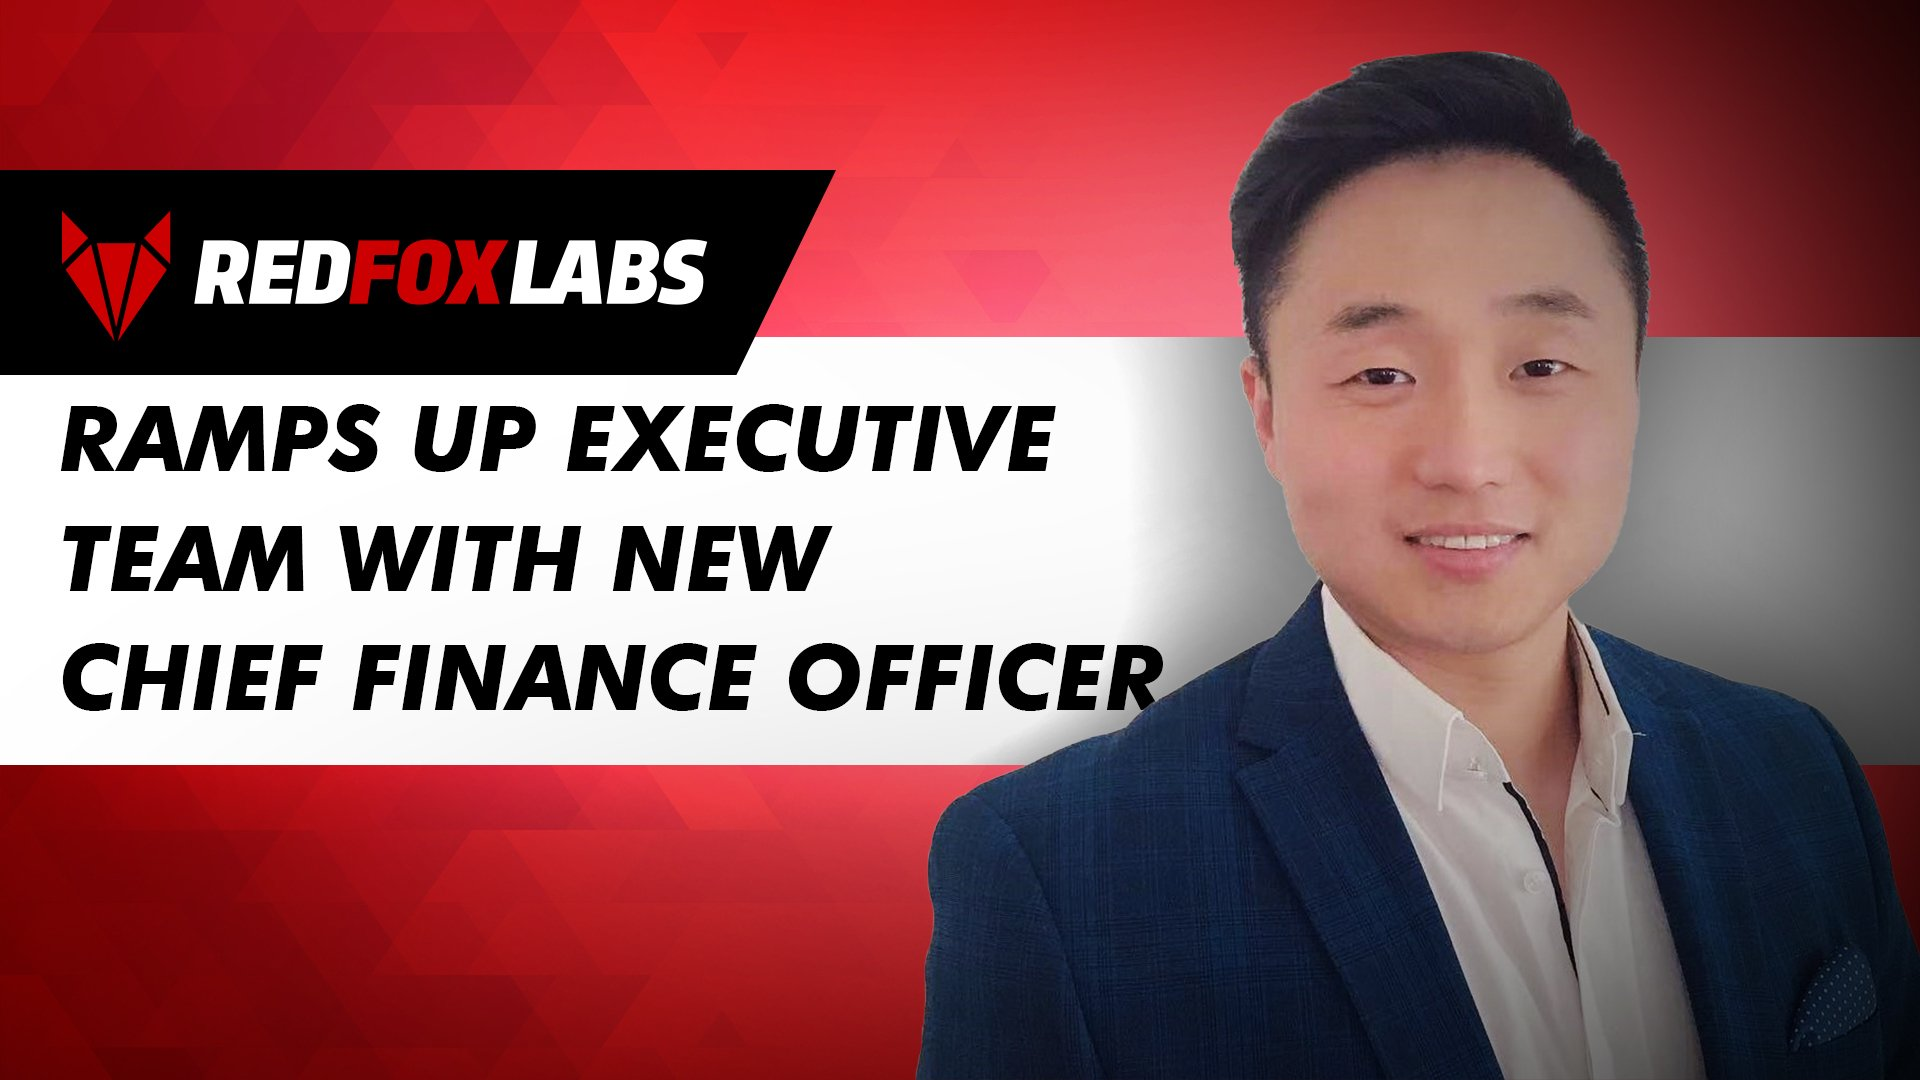 REDFOX LABS RAMPS UP EXECUTIVE TEAM WITH NEW CHIEF FINANCE OFFICER